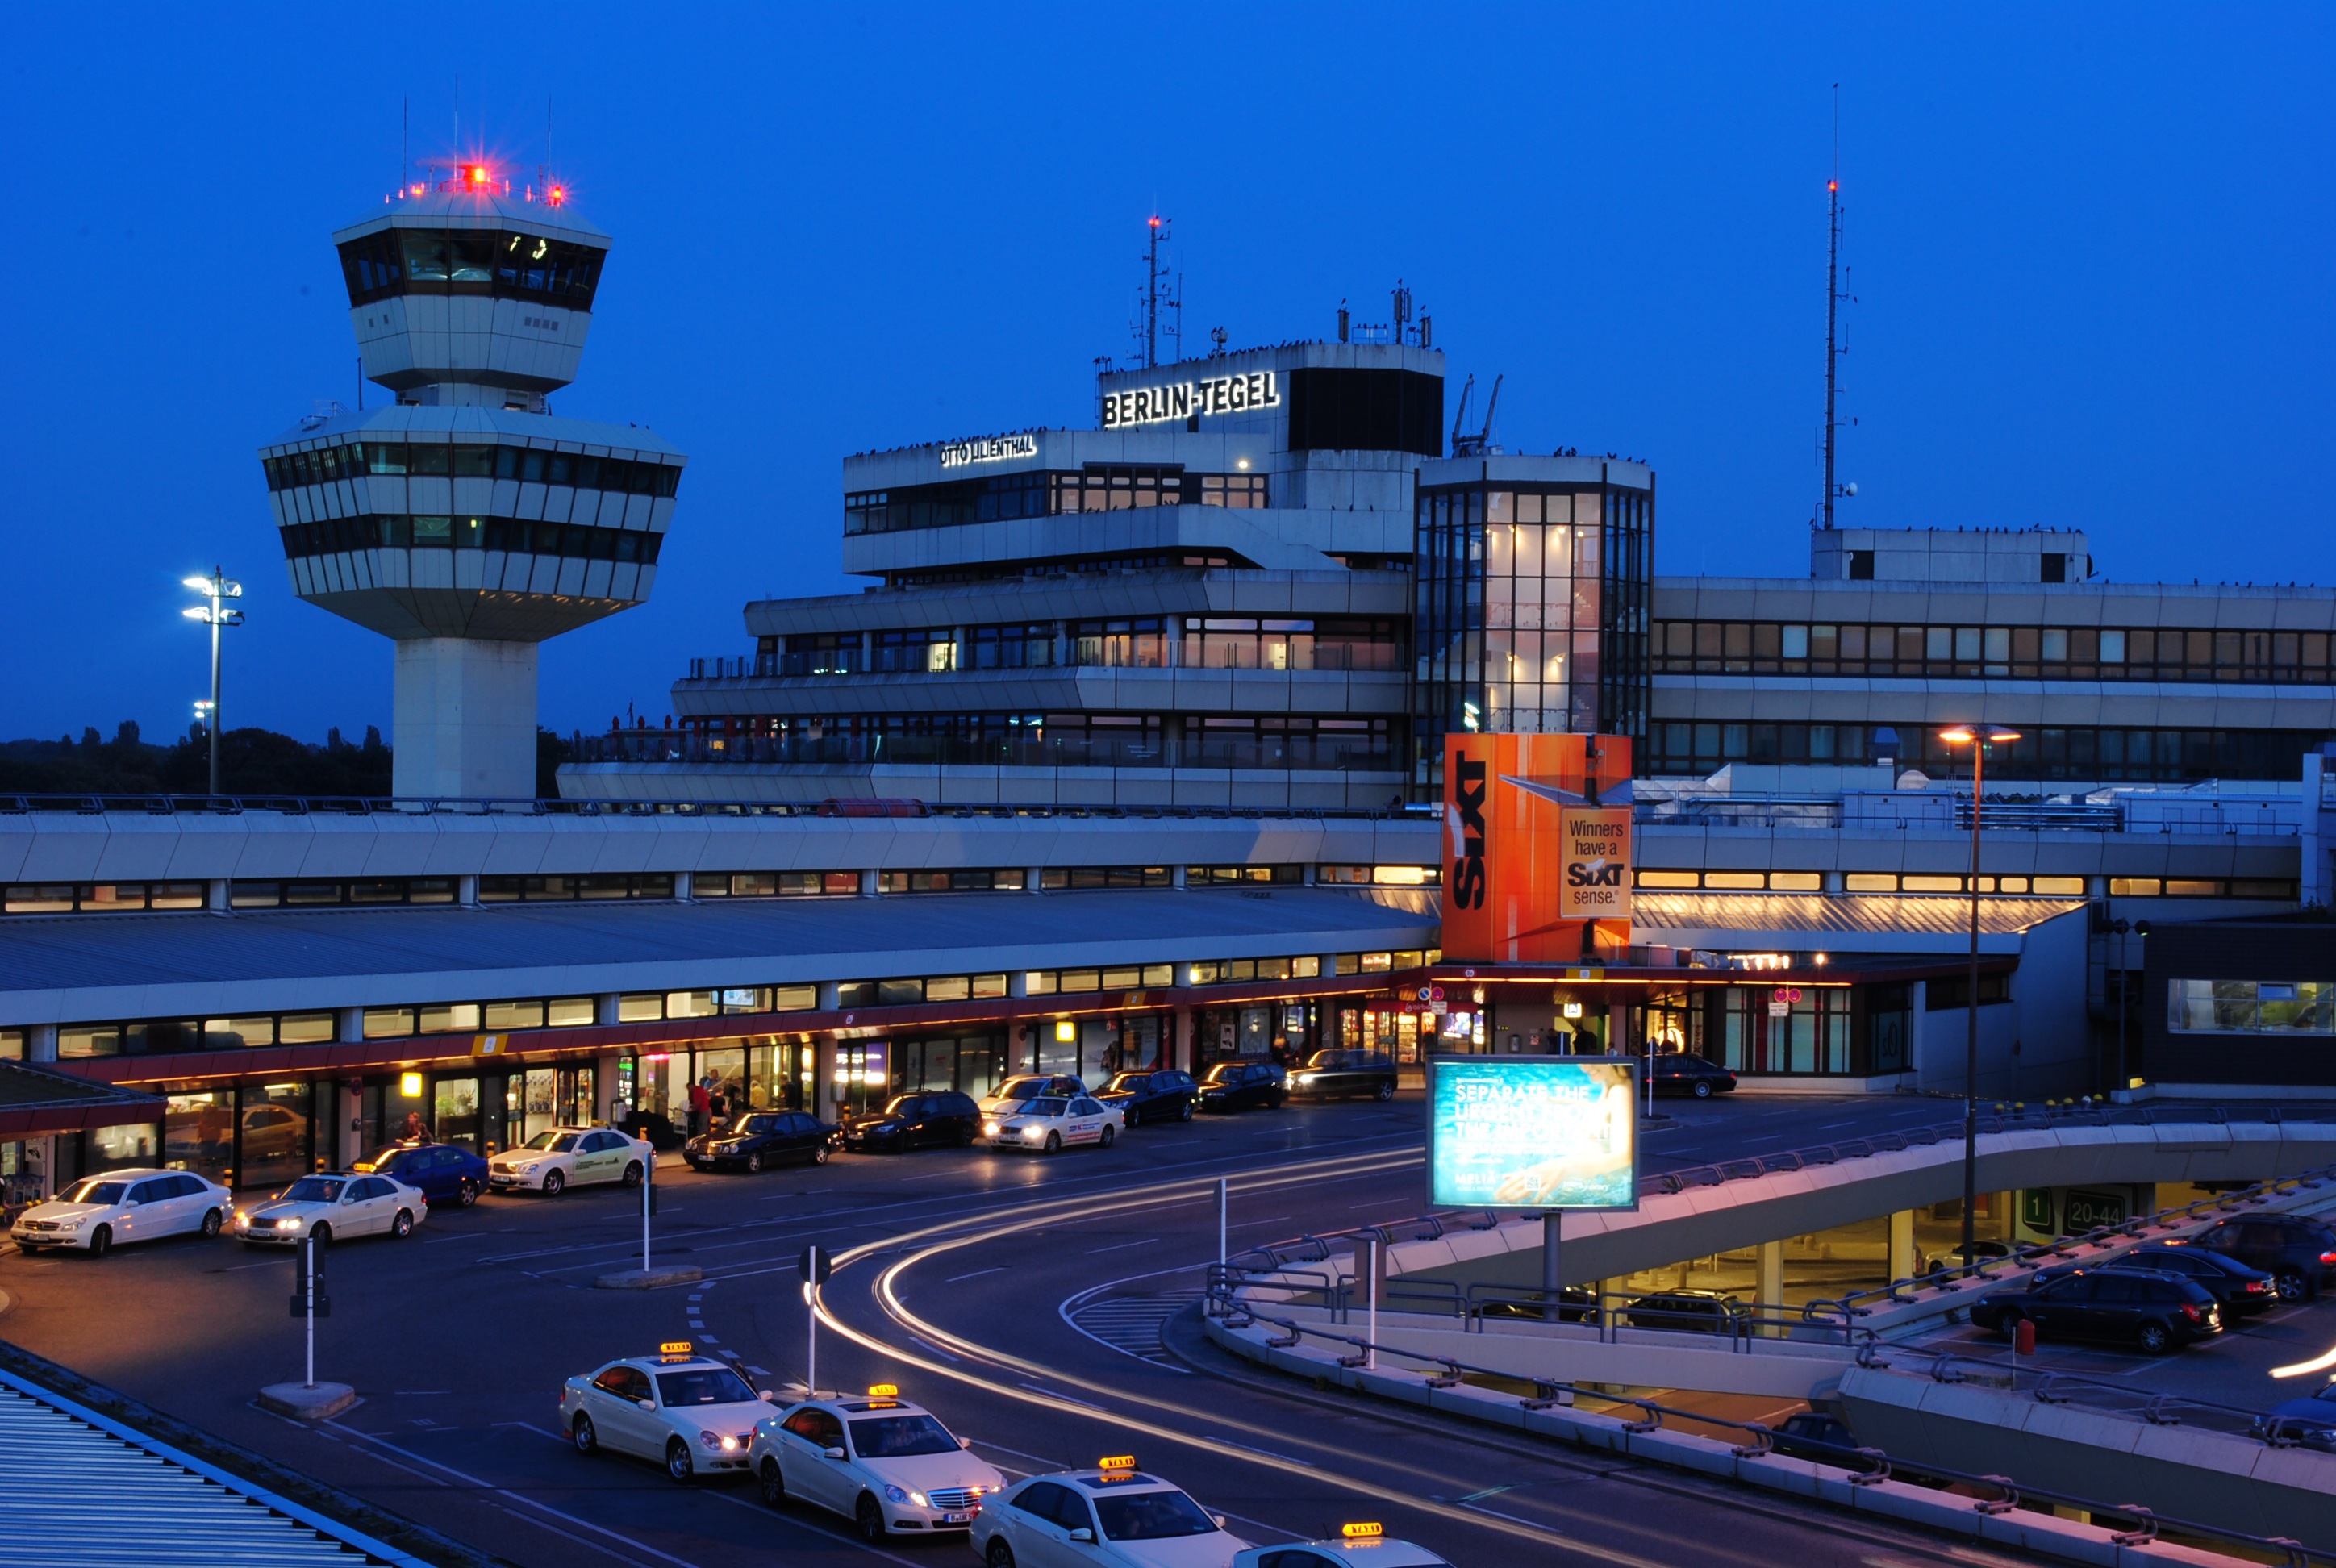 Flughafen Tegel Gate C Berlin Tegel Airport Wikipedia